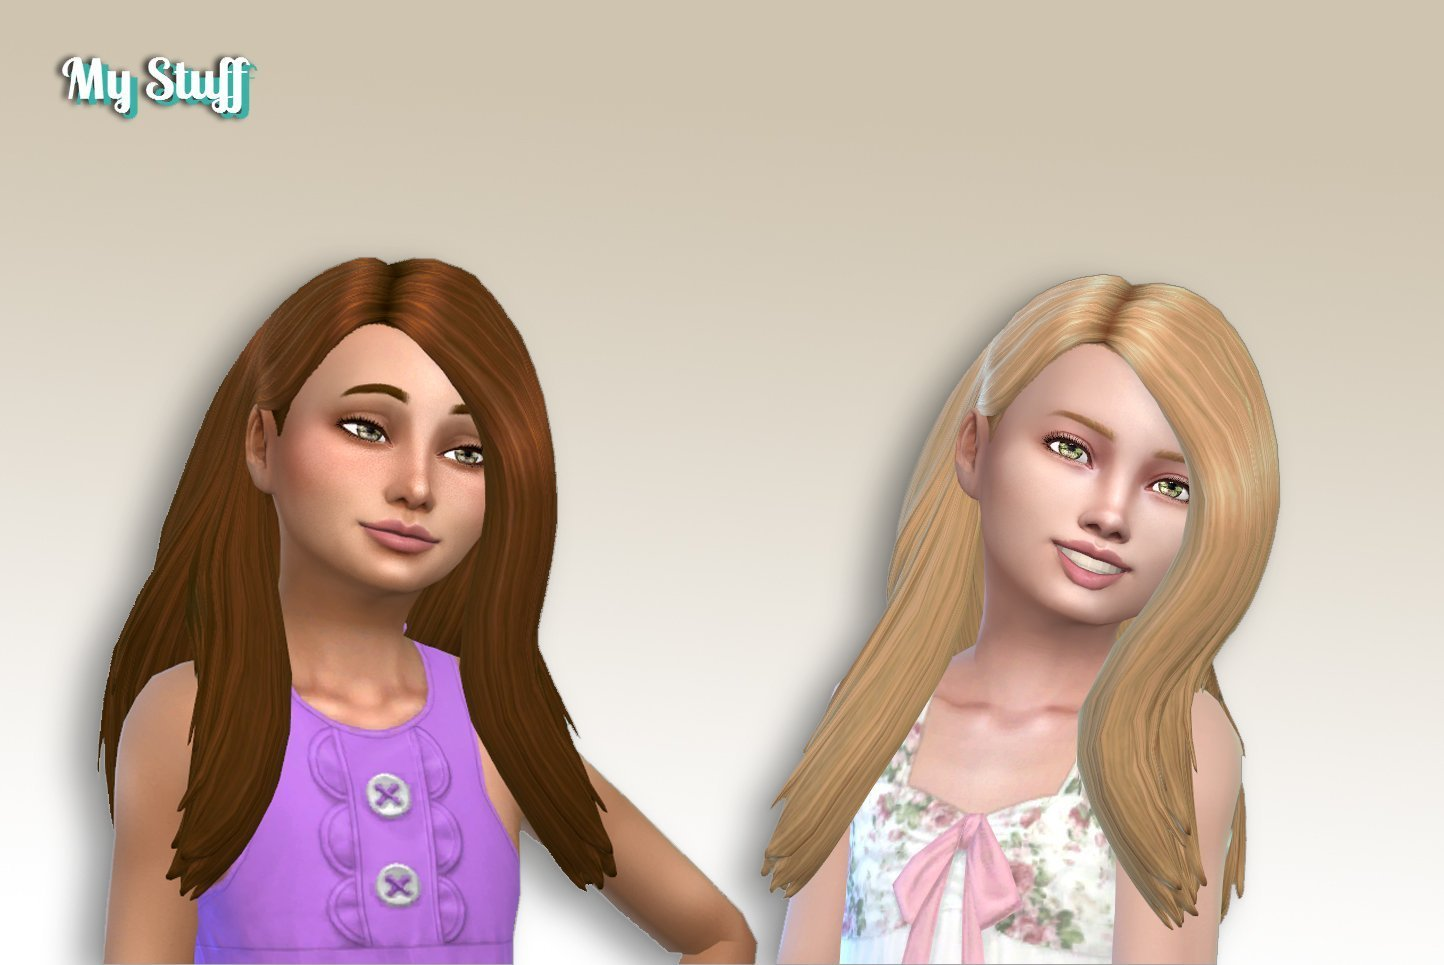 Penelope Hairstyle for Girls